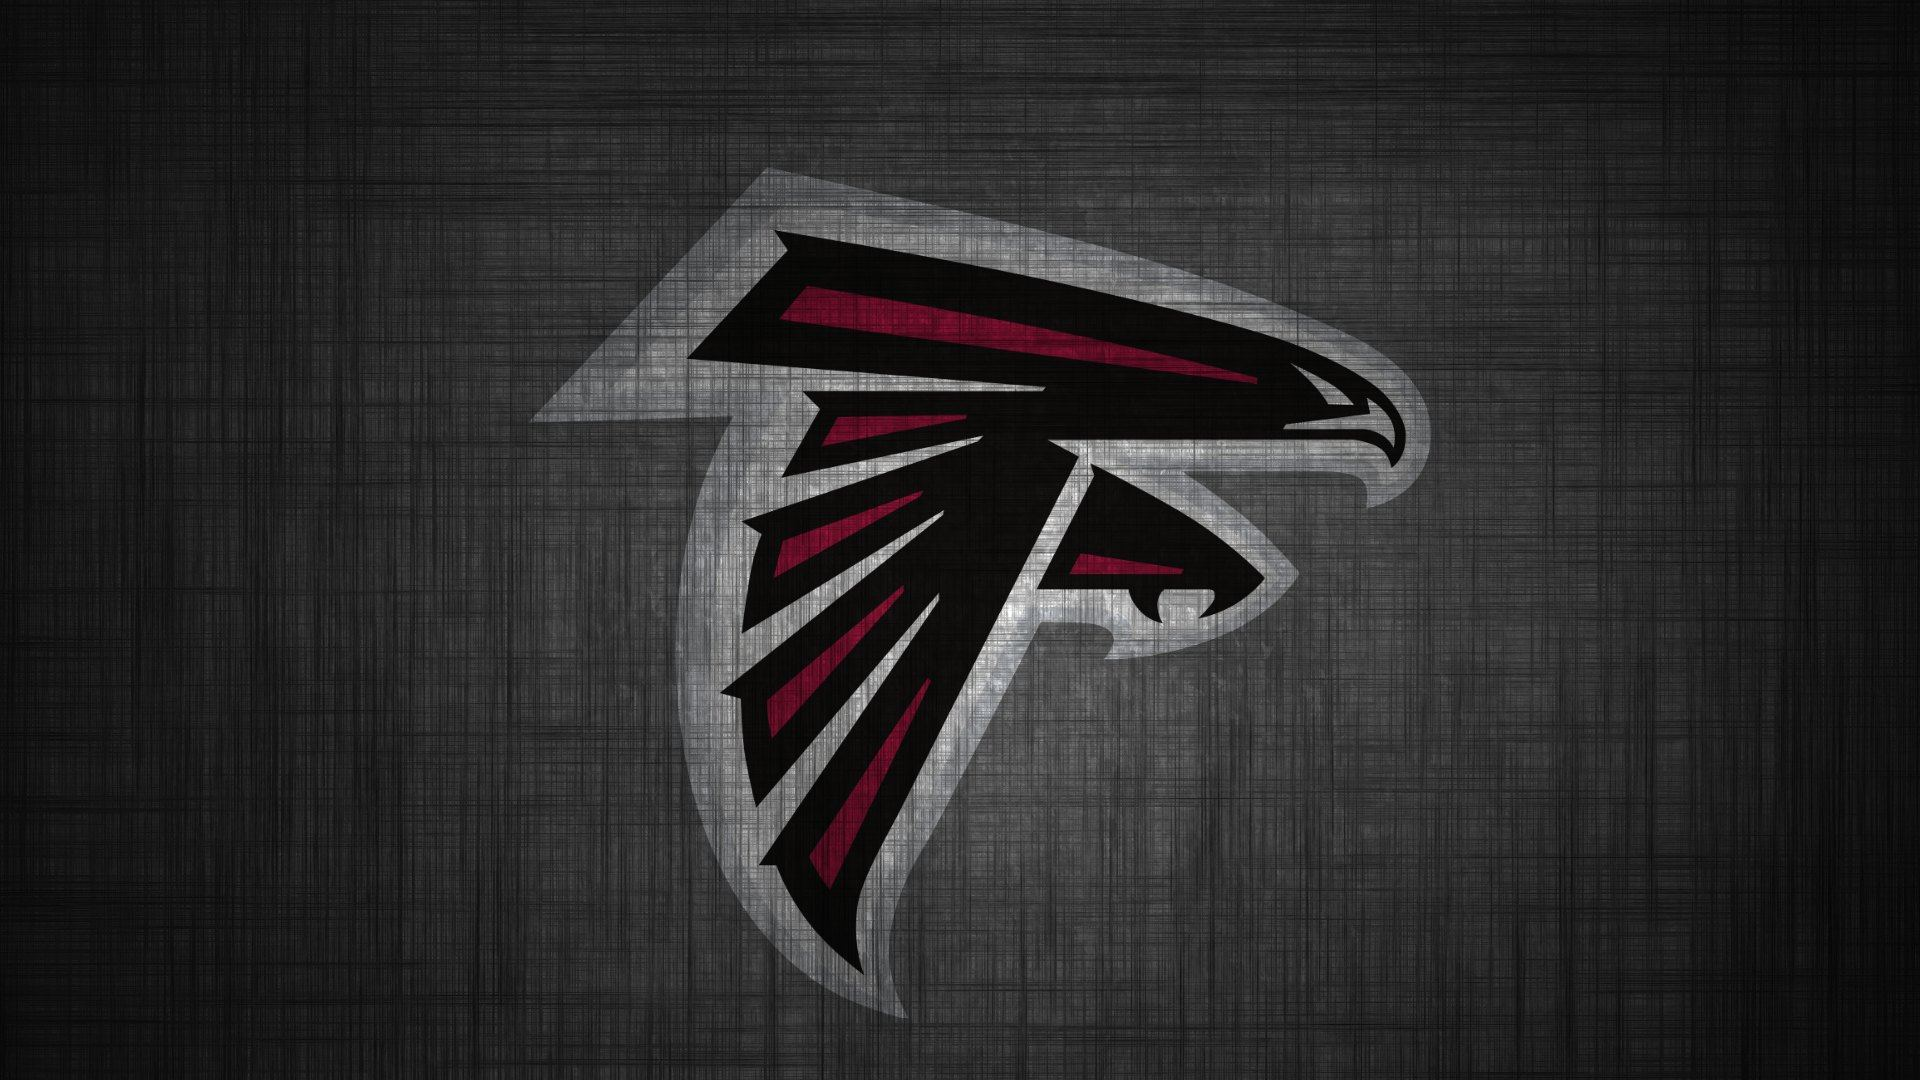 The Nfc South Will Rise Again Talk About The Falcons Falcons